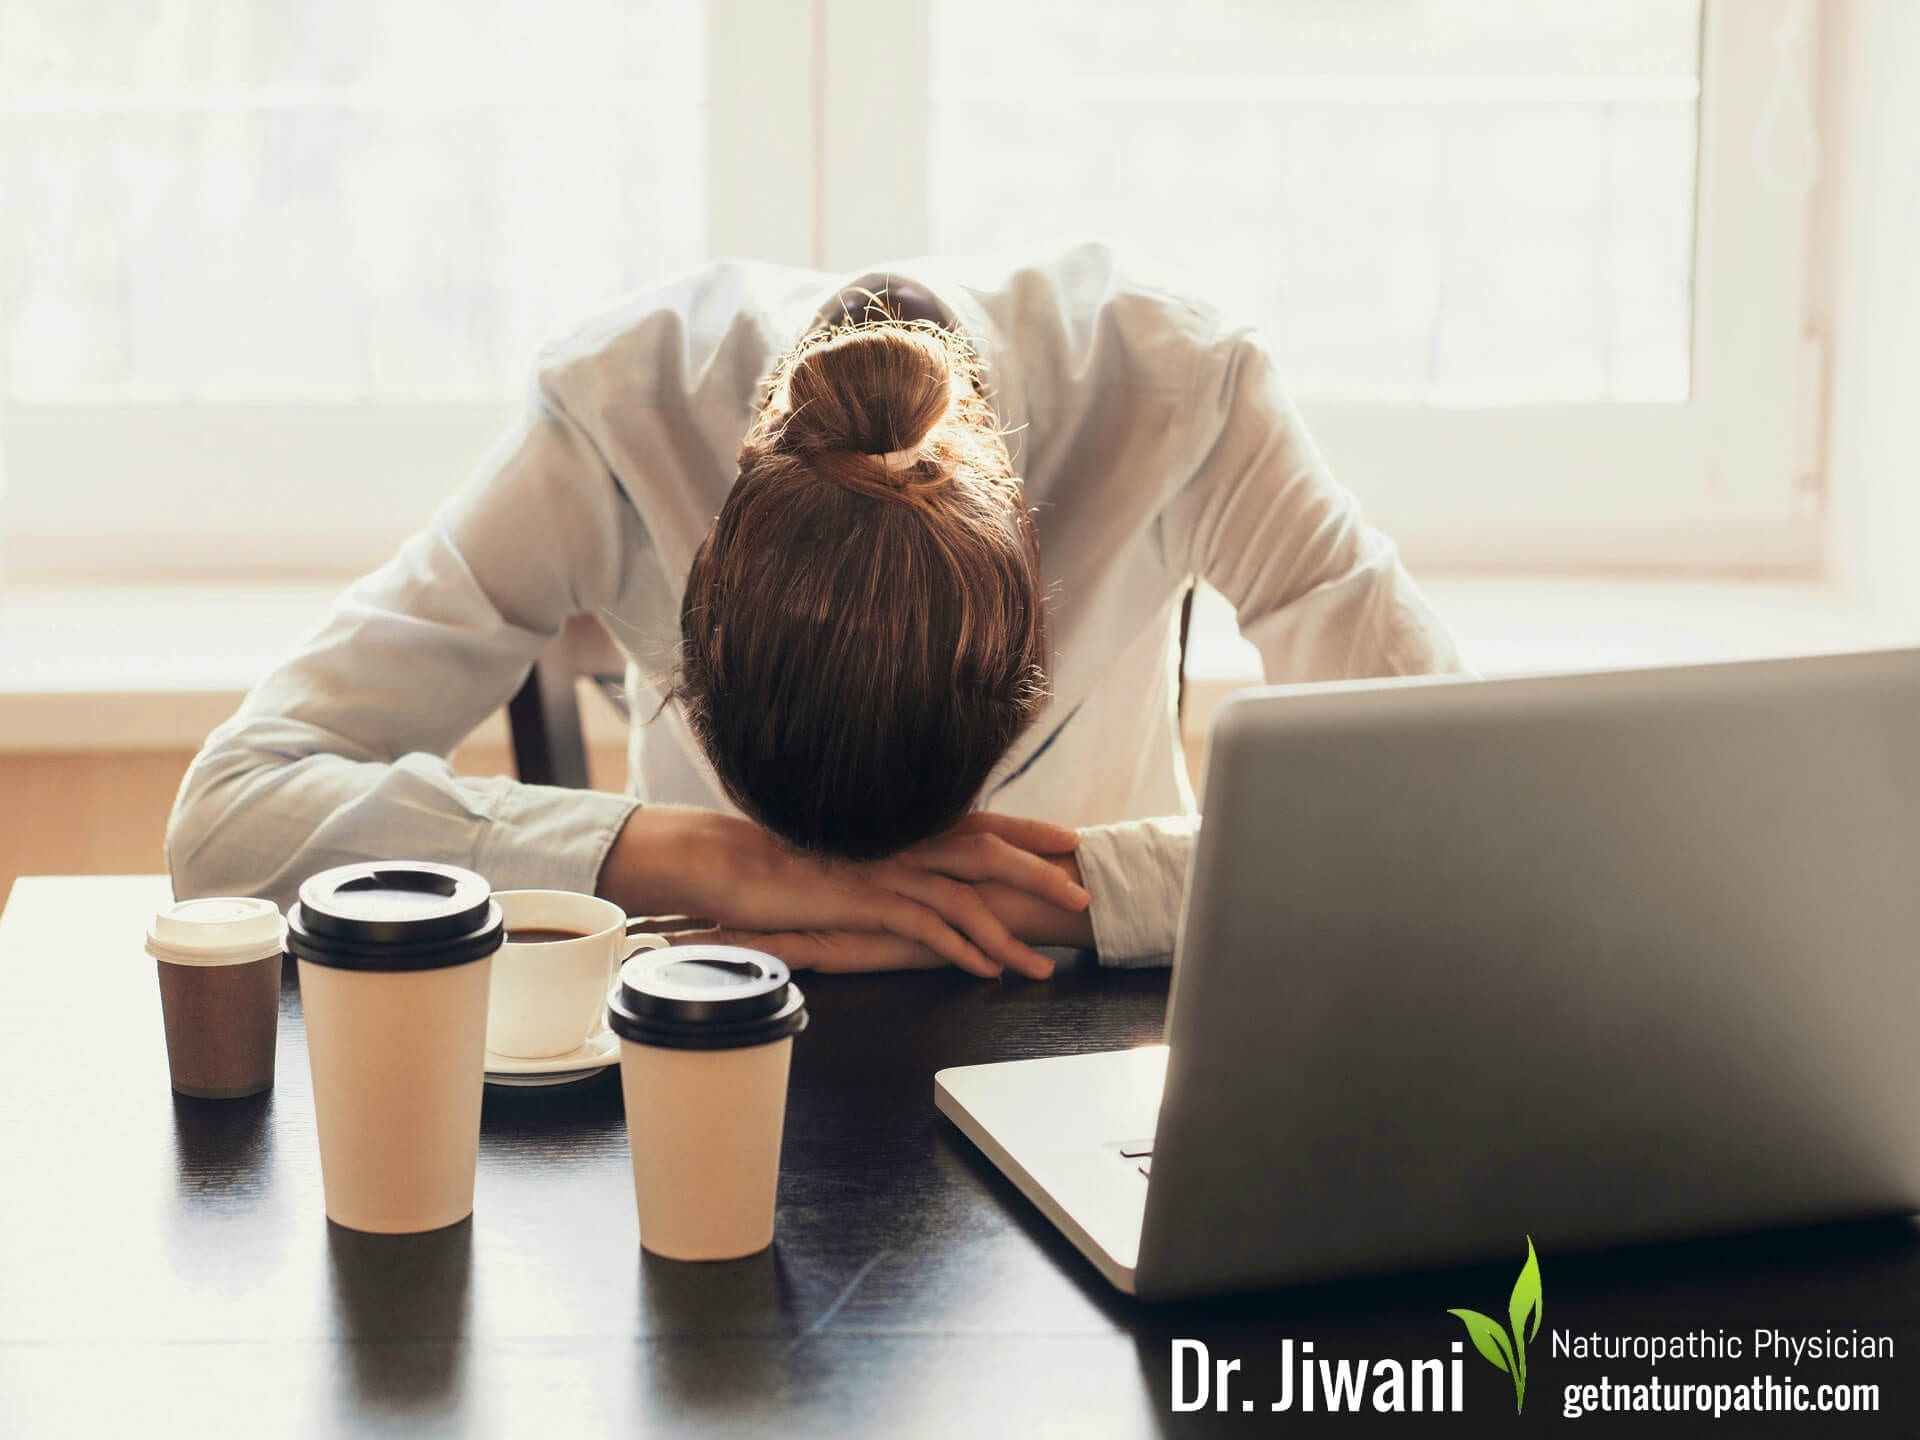 Fatigue Sugar the Sweet Poison: The Alarming Ways Sugar Damages Your Body & Brain* | Dr. Jiwani's Naturopathic Nuggets Blog